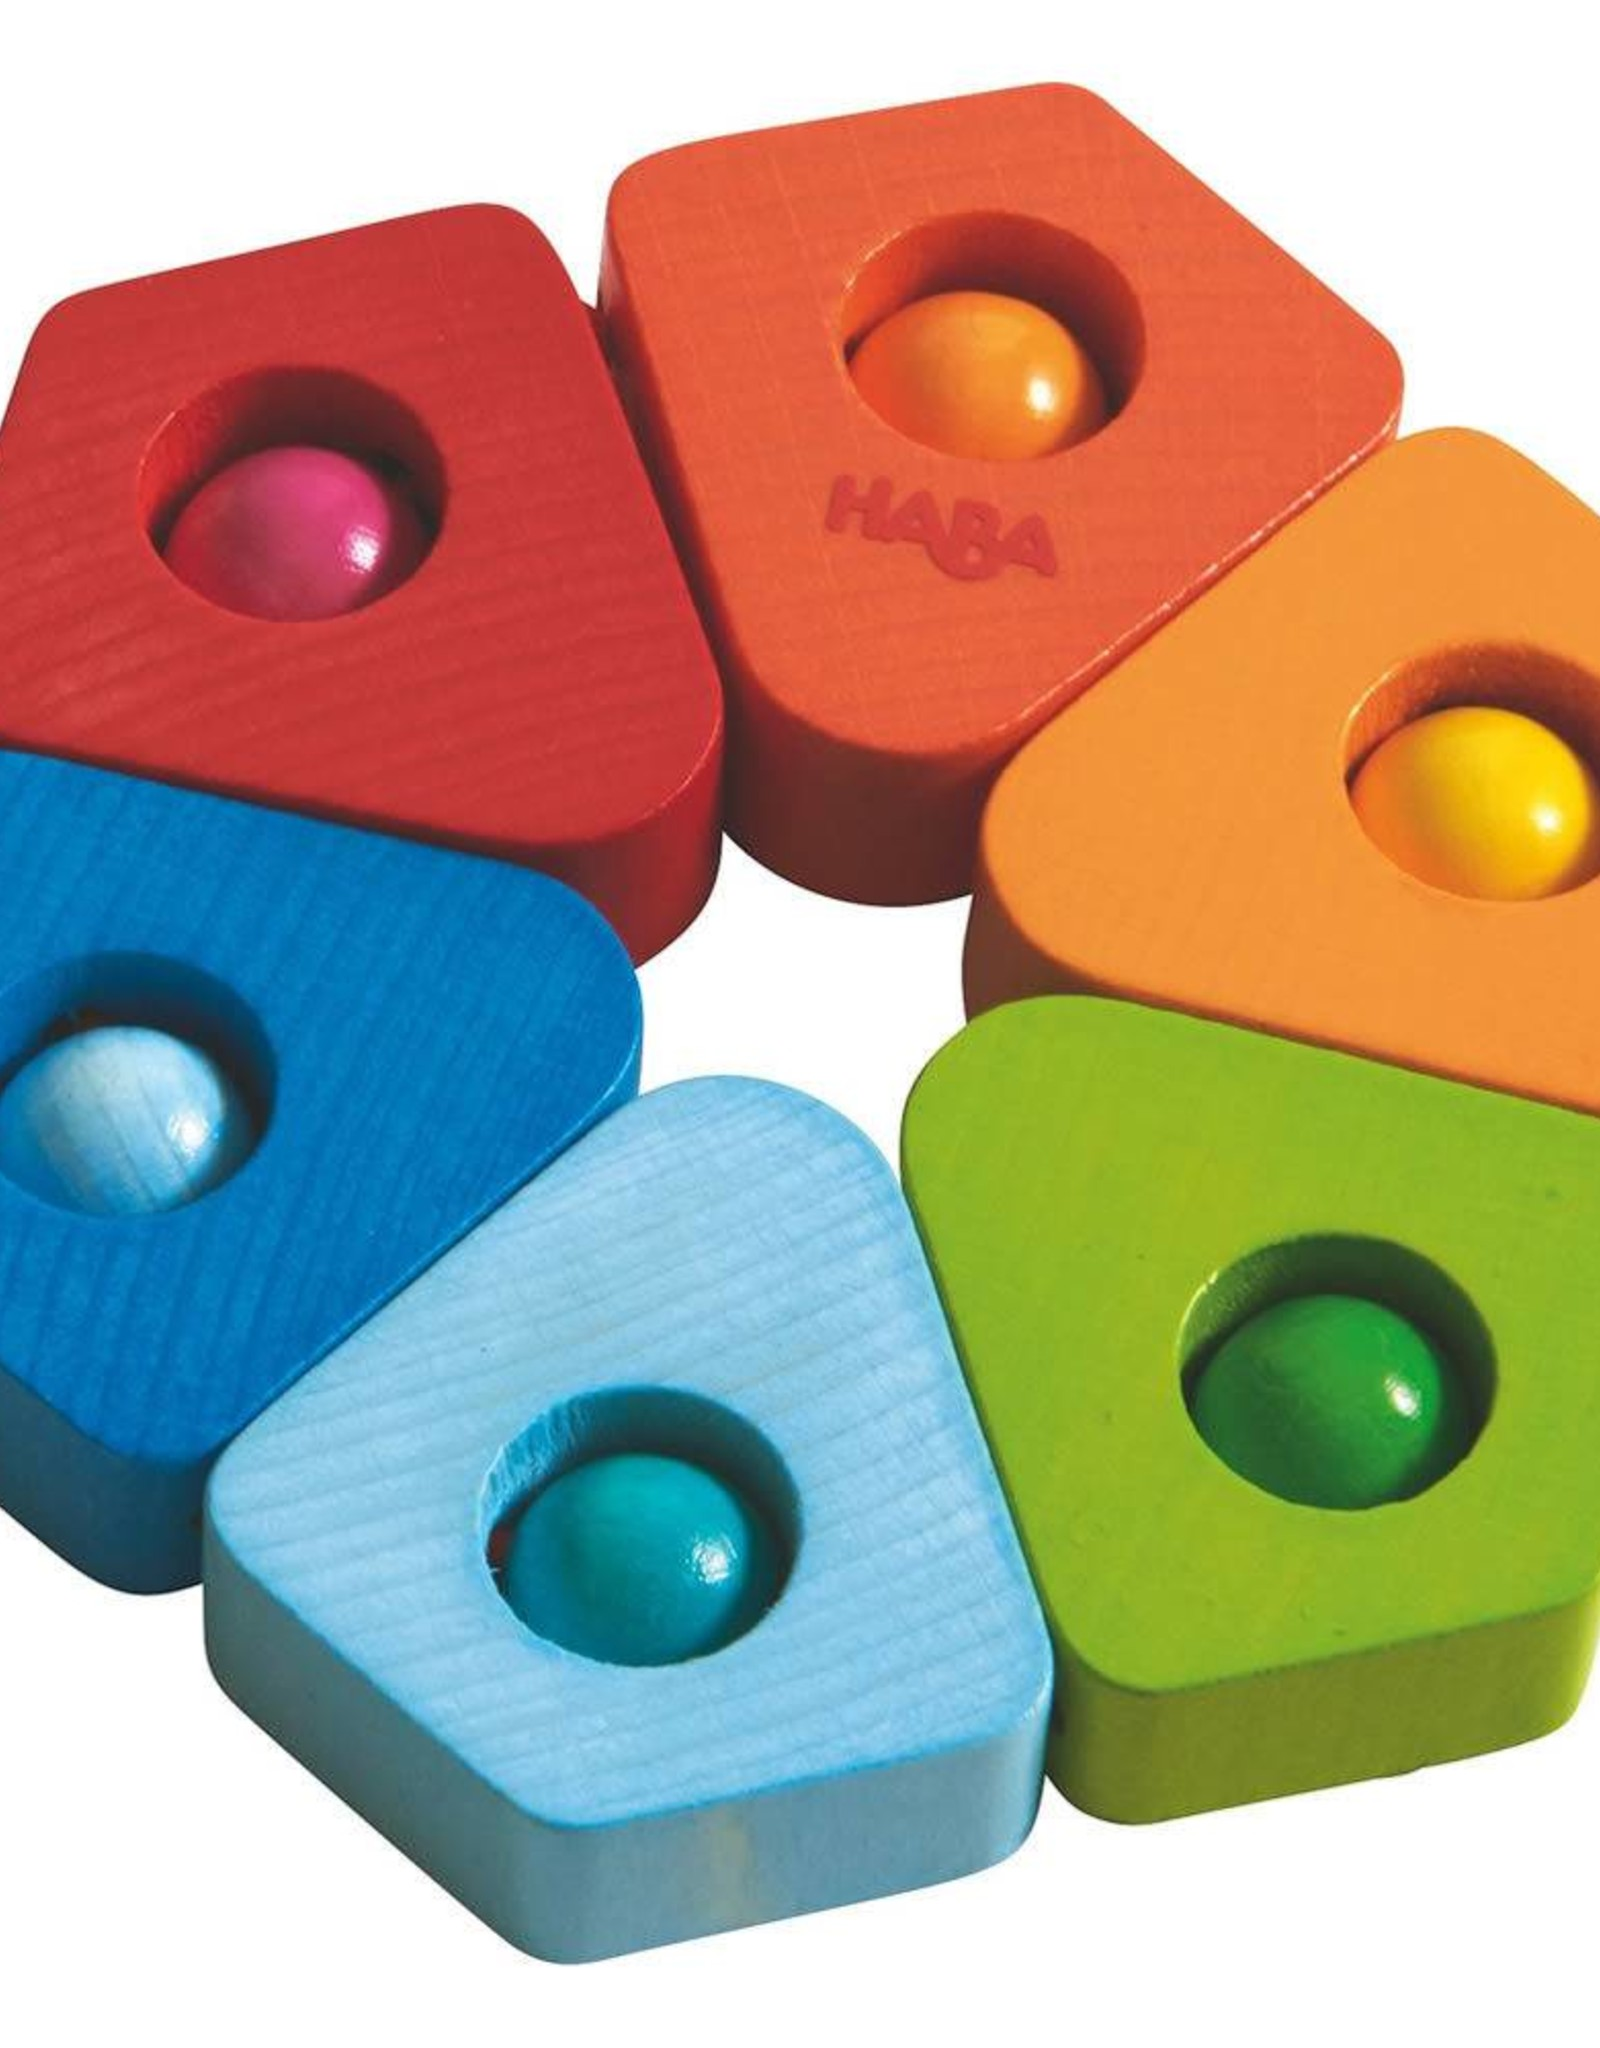 Haba color splodge clutching toy